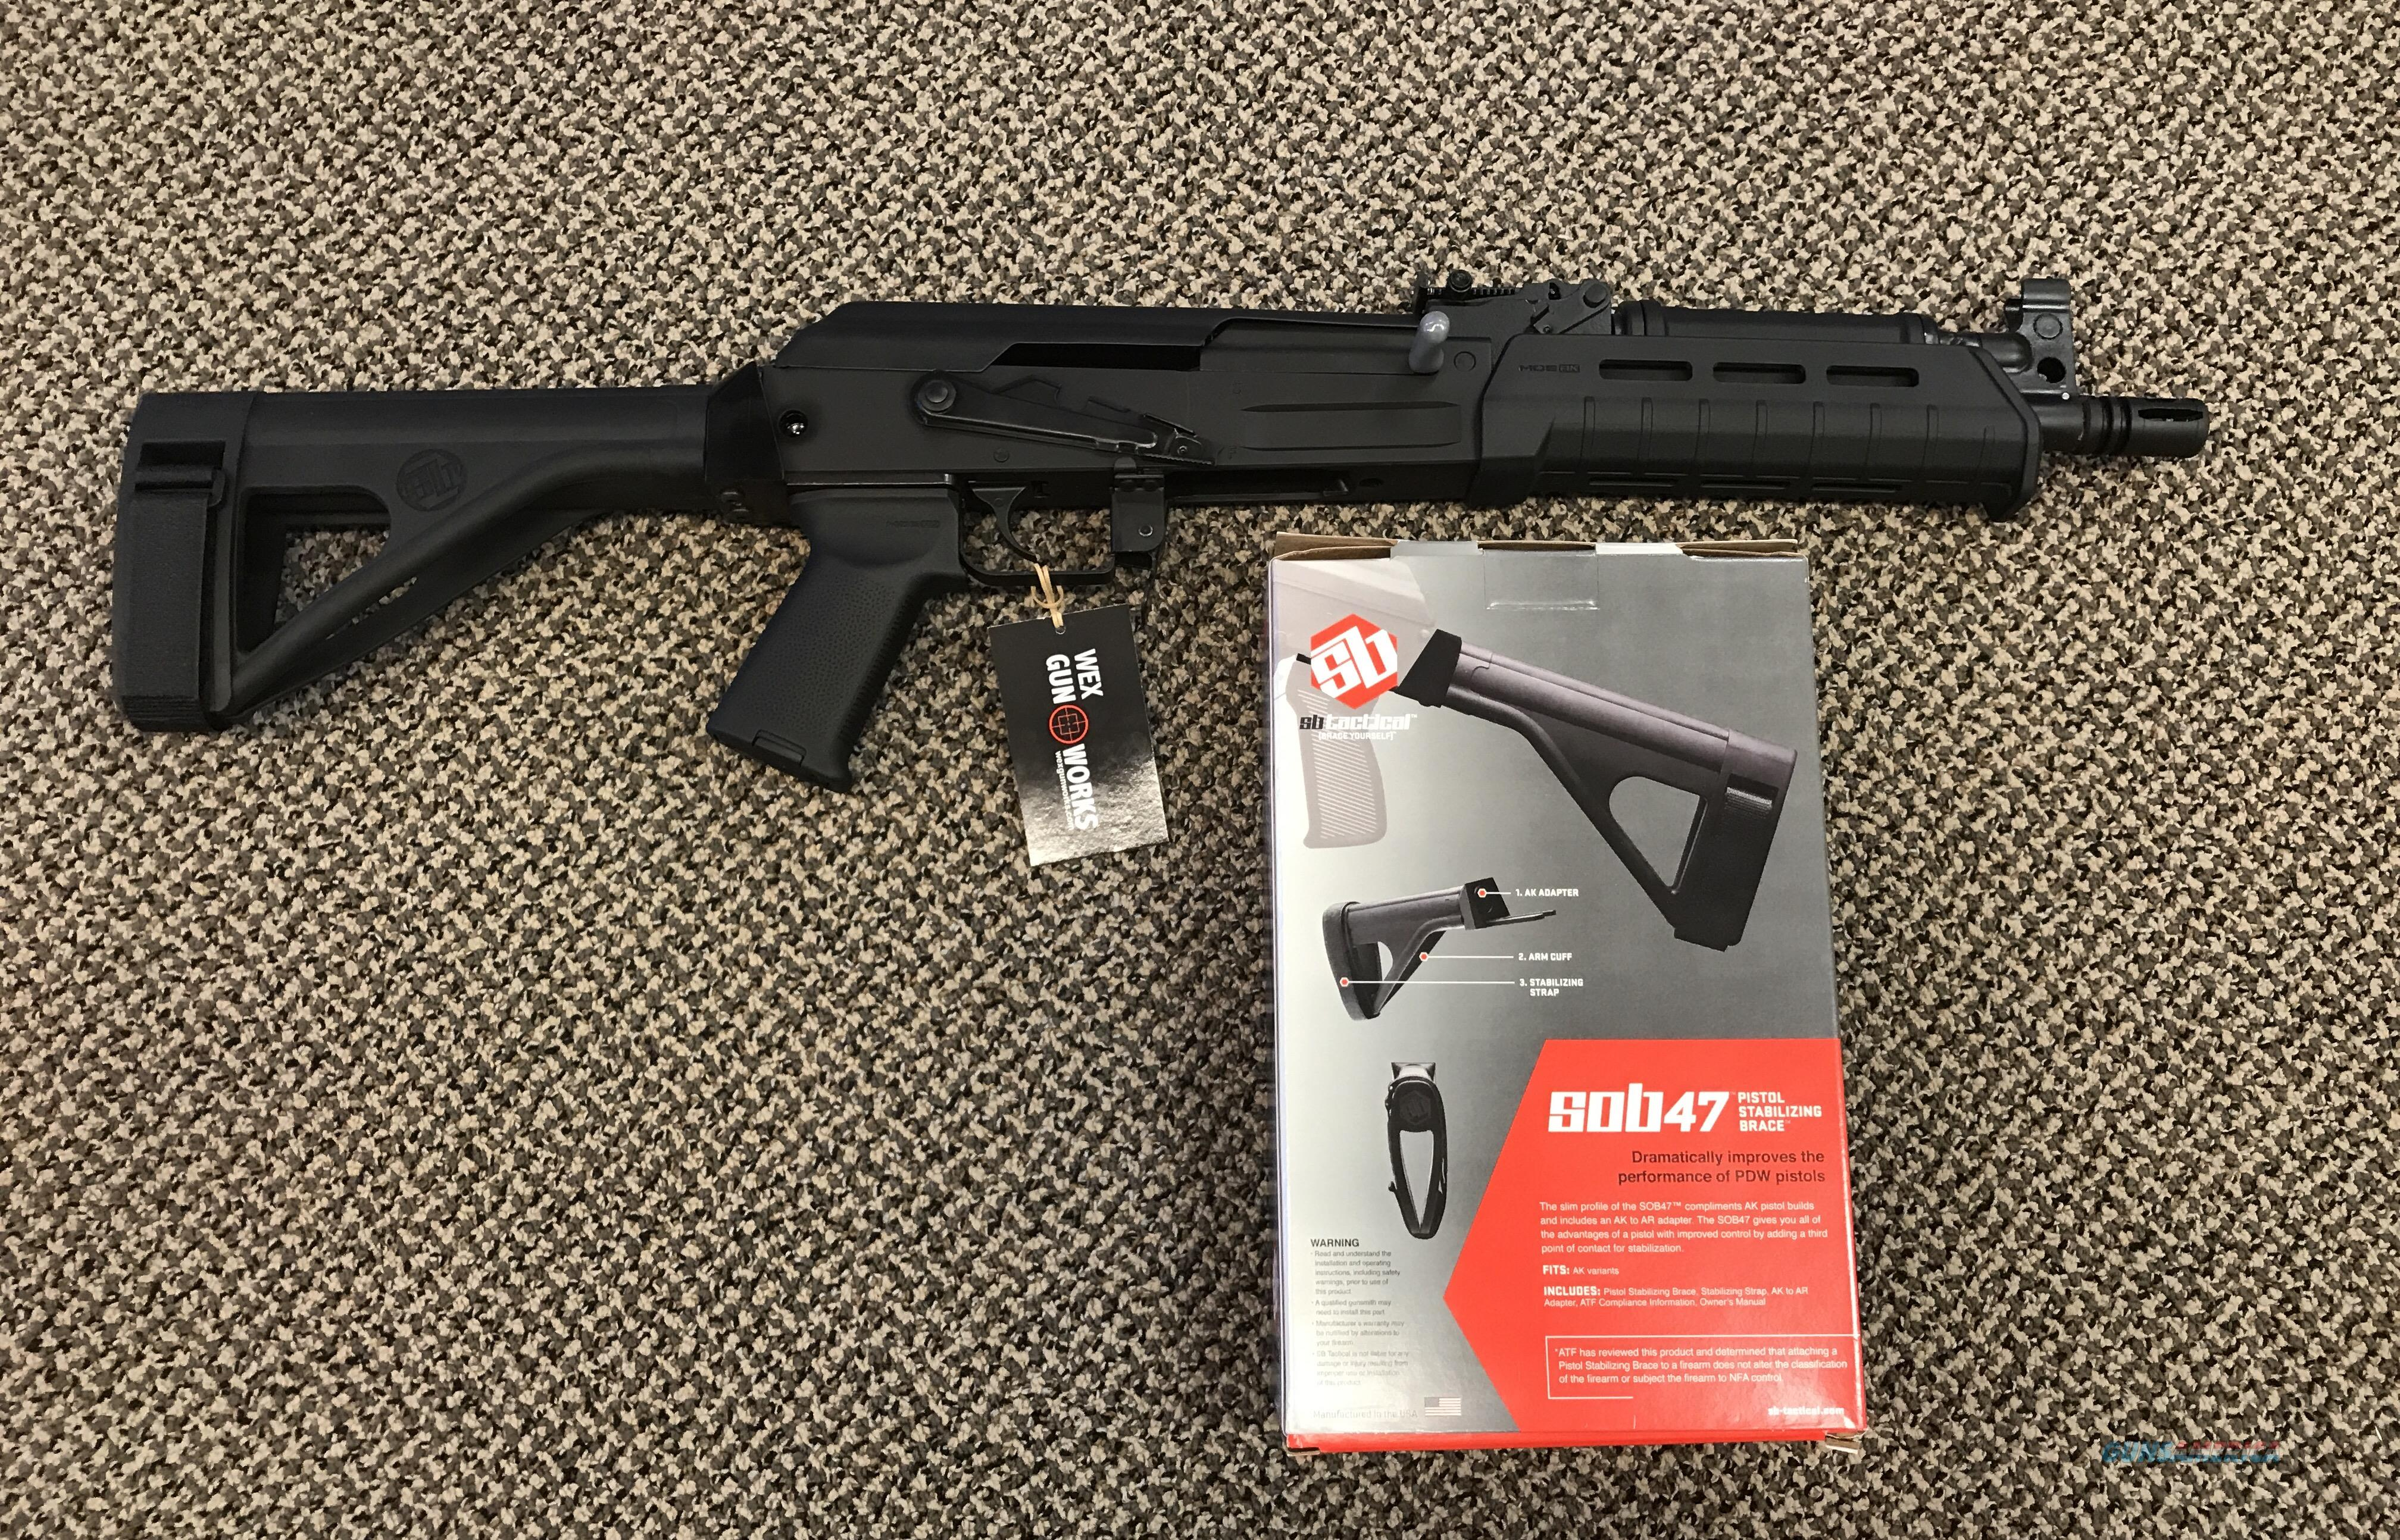 CENTURY ARMS C39V2 PISTOL MOE  7.62x39 WITH SB TACTICAL BRACE NEW IN BOX  Guns > Pistols > Century International Arms - Pistols > Pistols